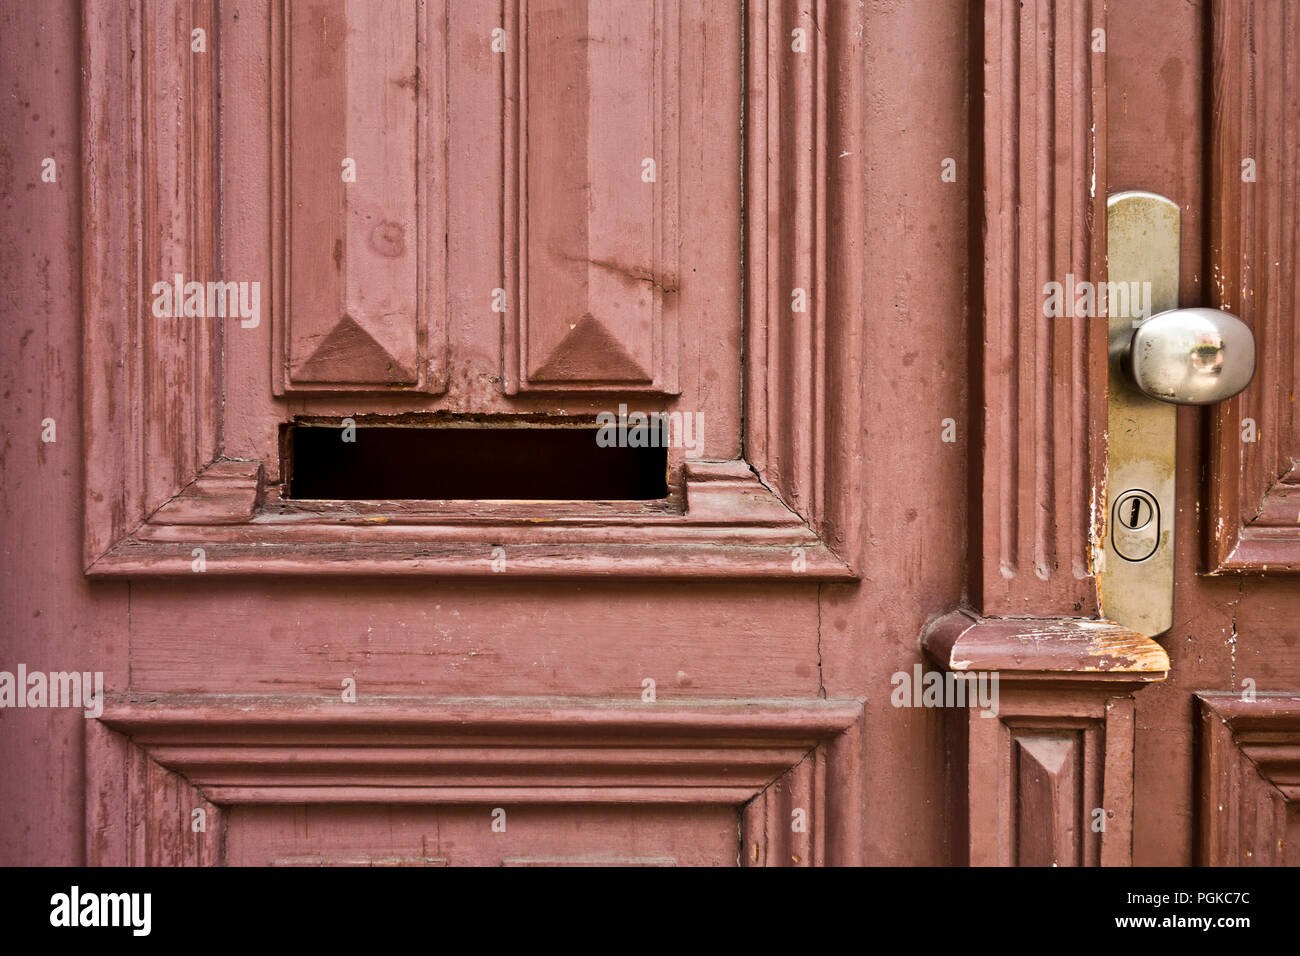 a mail slot in an old wooden door - Stock Image